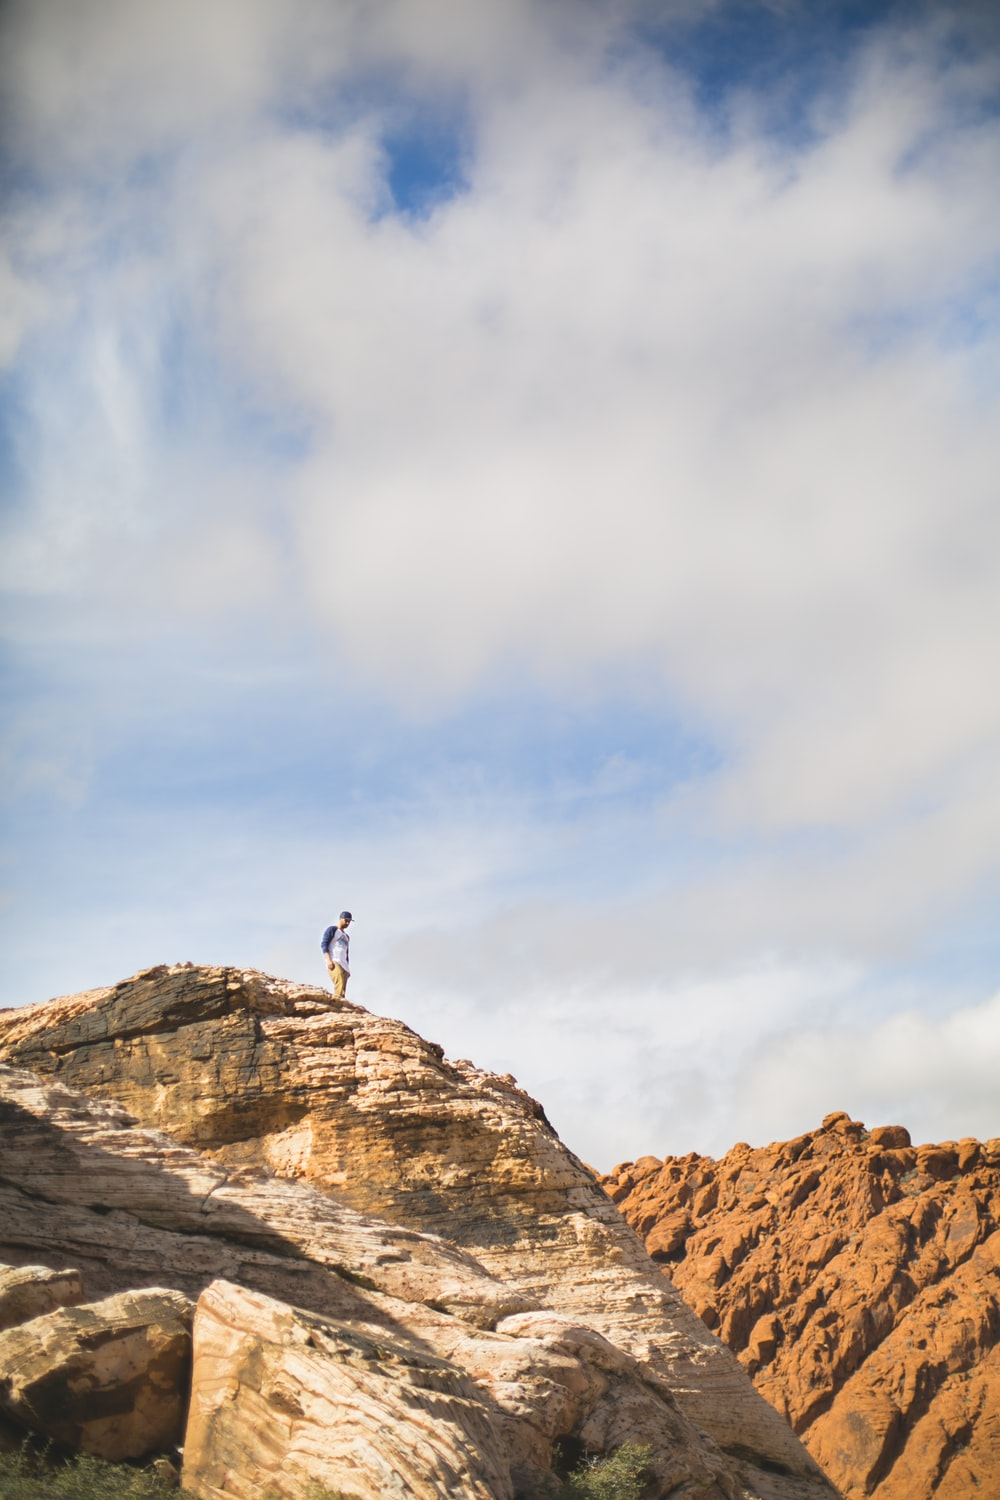 person standing on brown rock formation under white clouds and blue sky during daytime